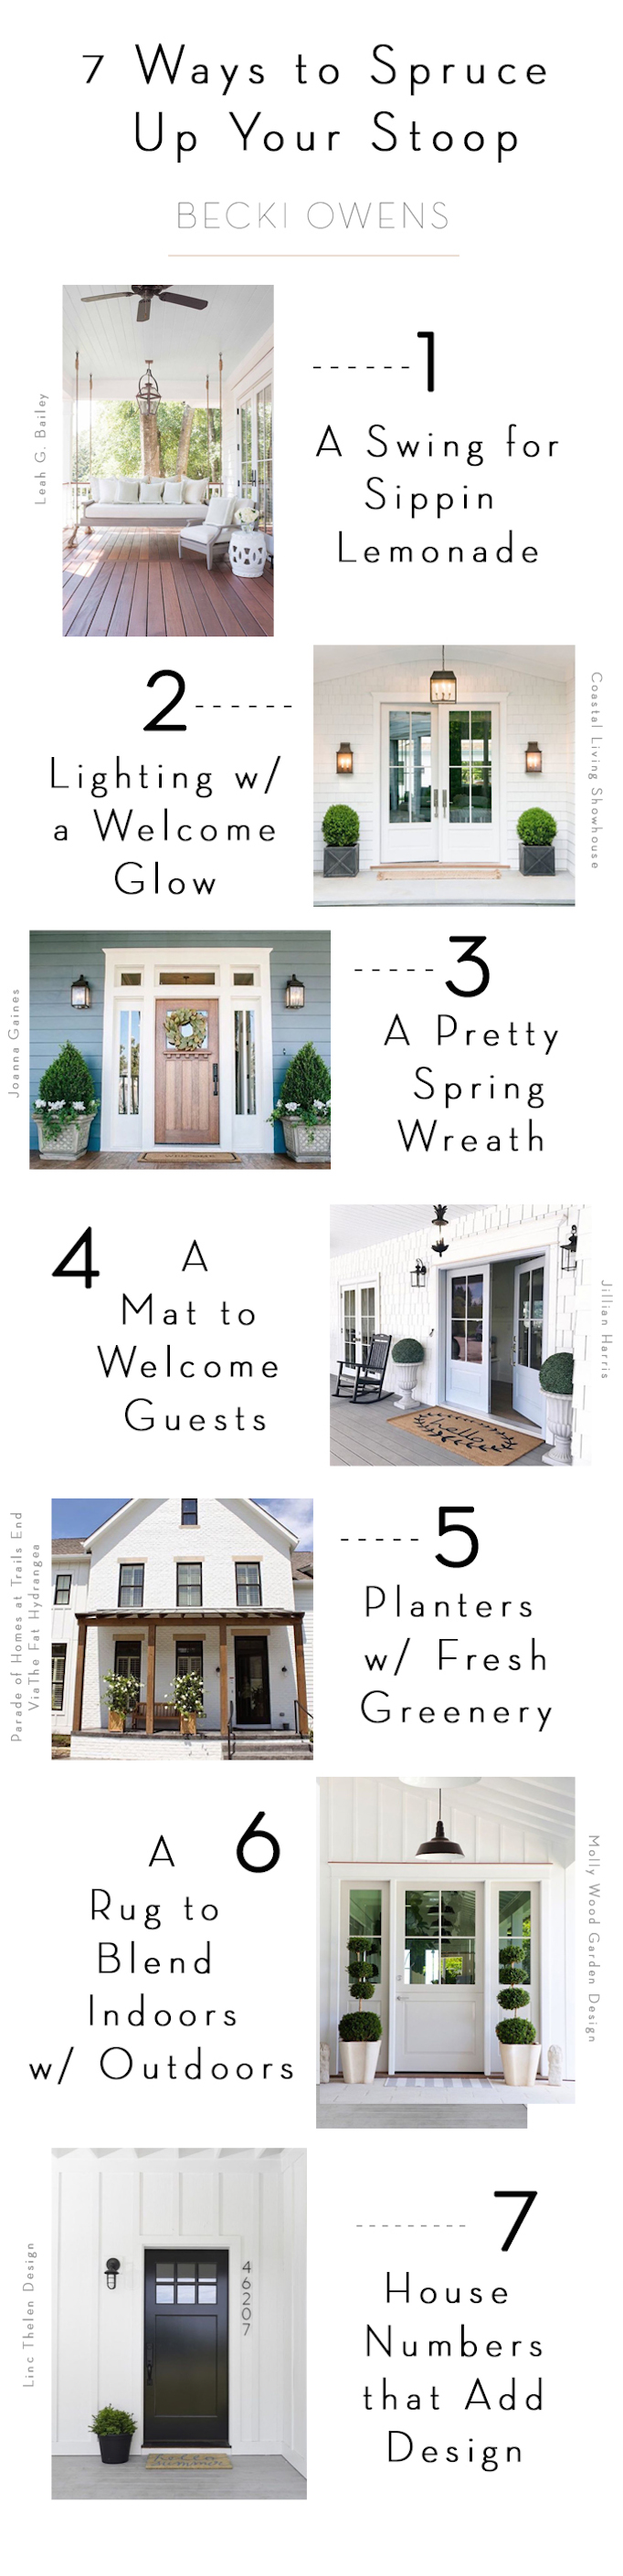 7 ways to spruce up your stoop